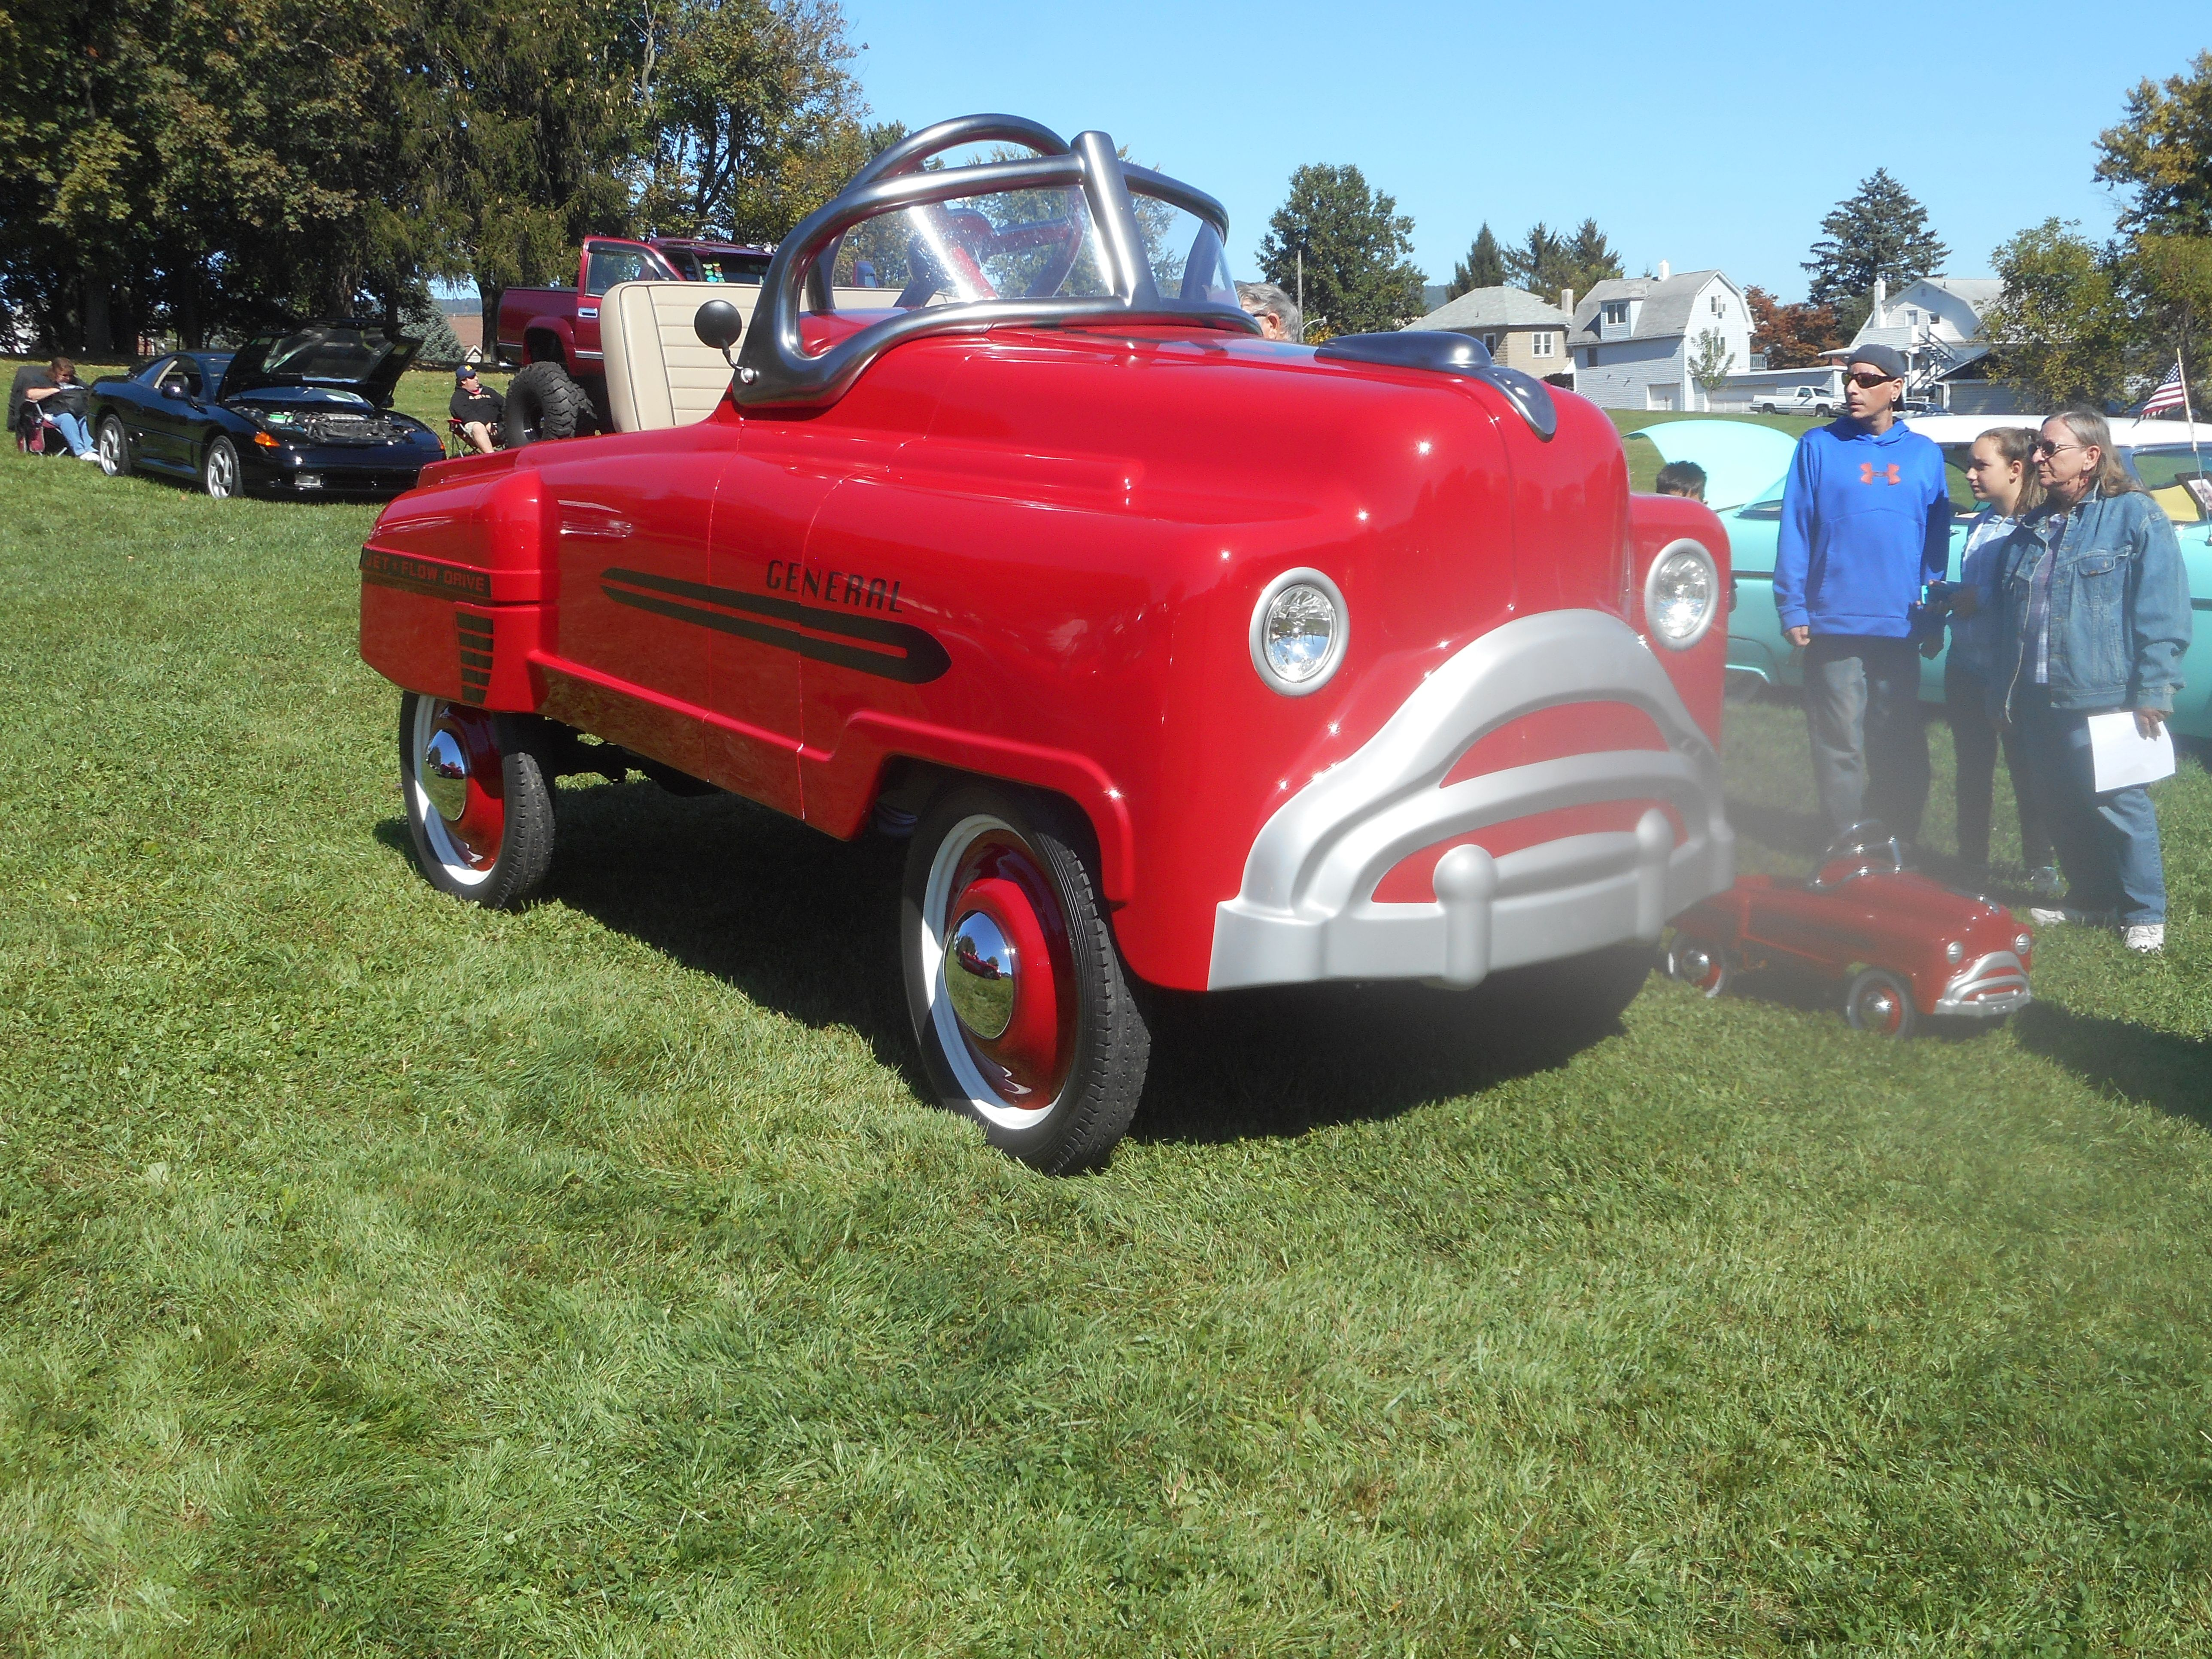 Pin by Doug Stark on Old Rides Trucks,Cars,rat Rods, | Pinterest ...